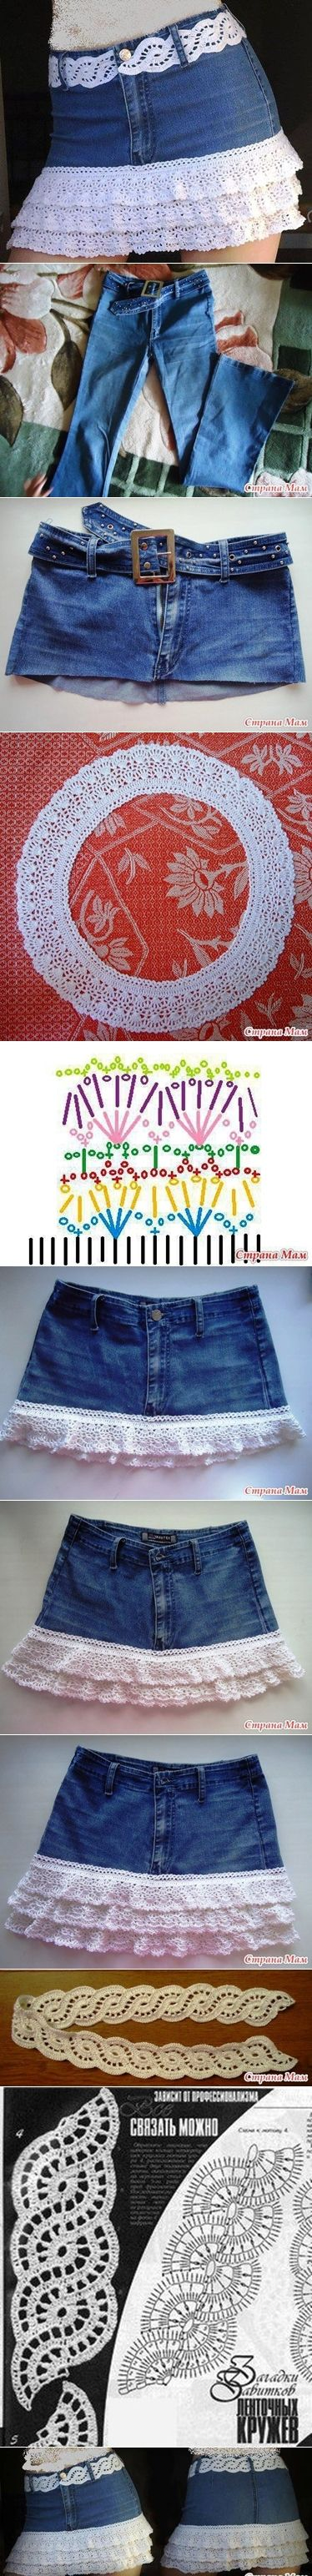 crochet-fringed-jean-skirt-tutorial